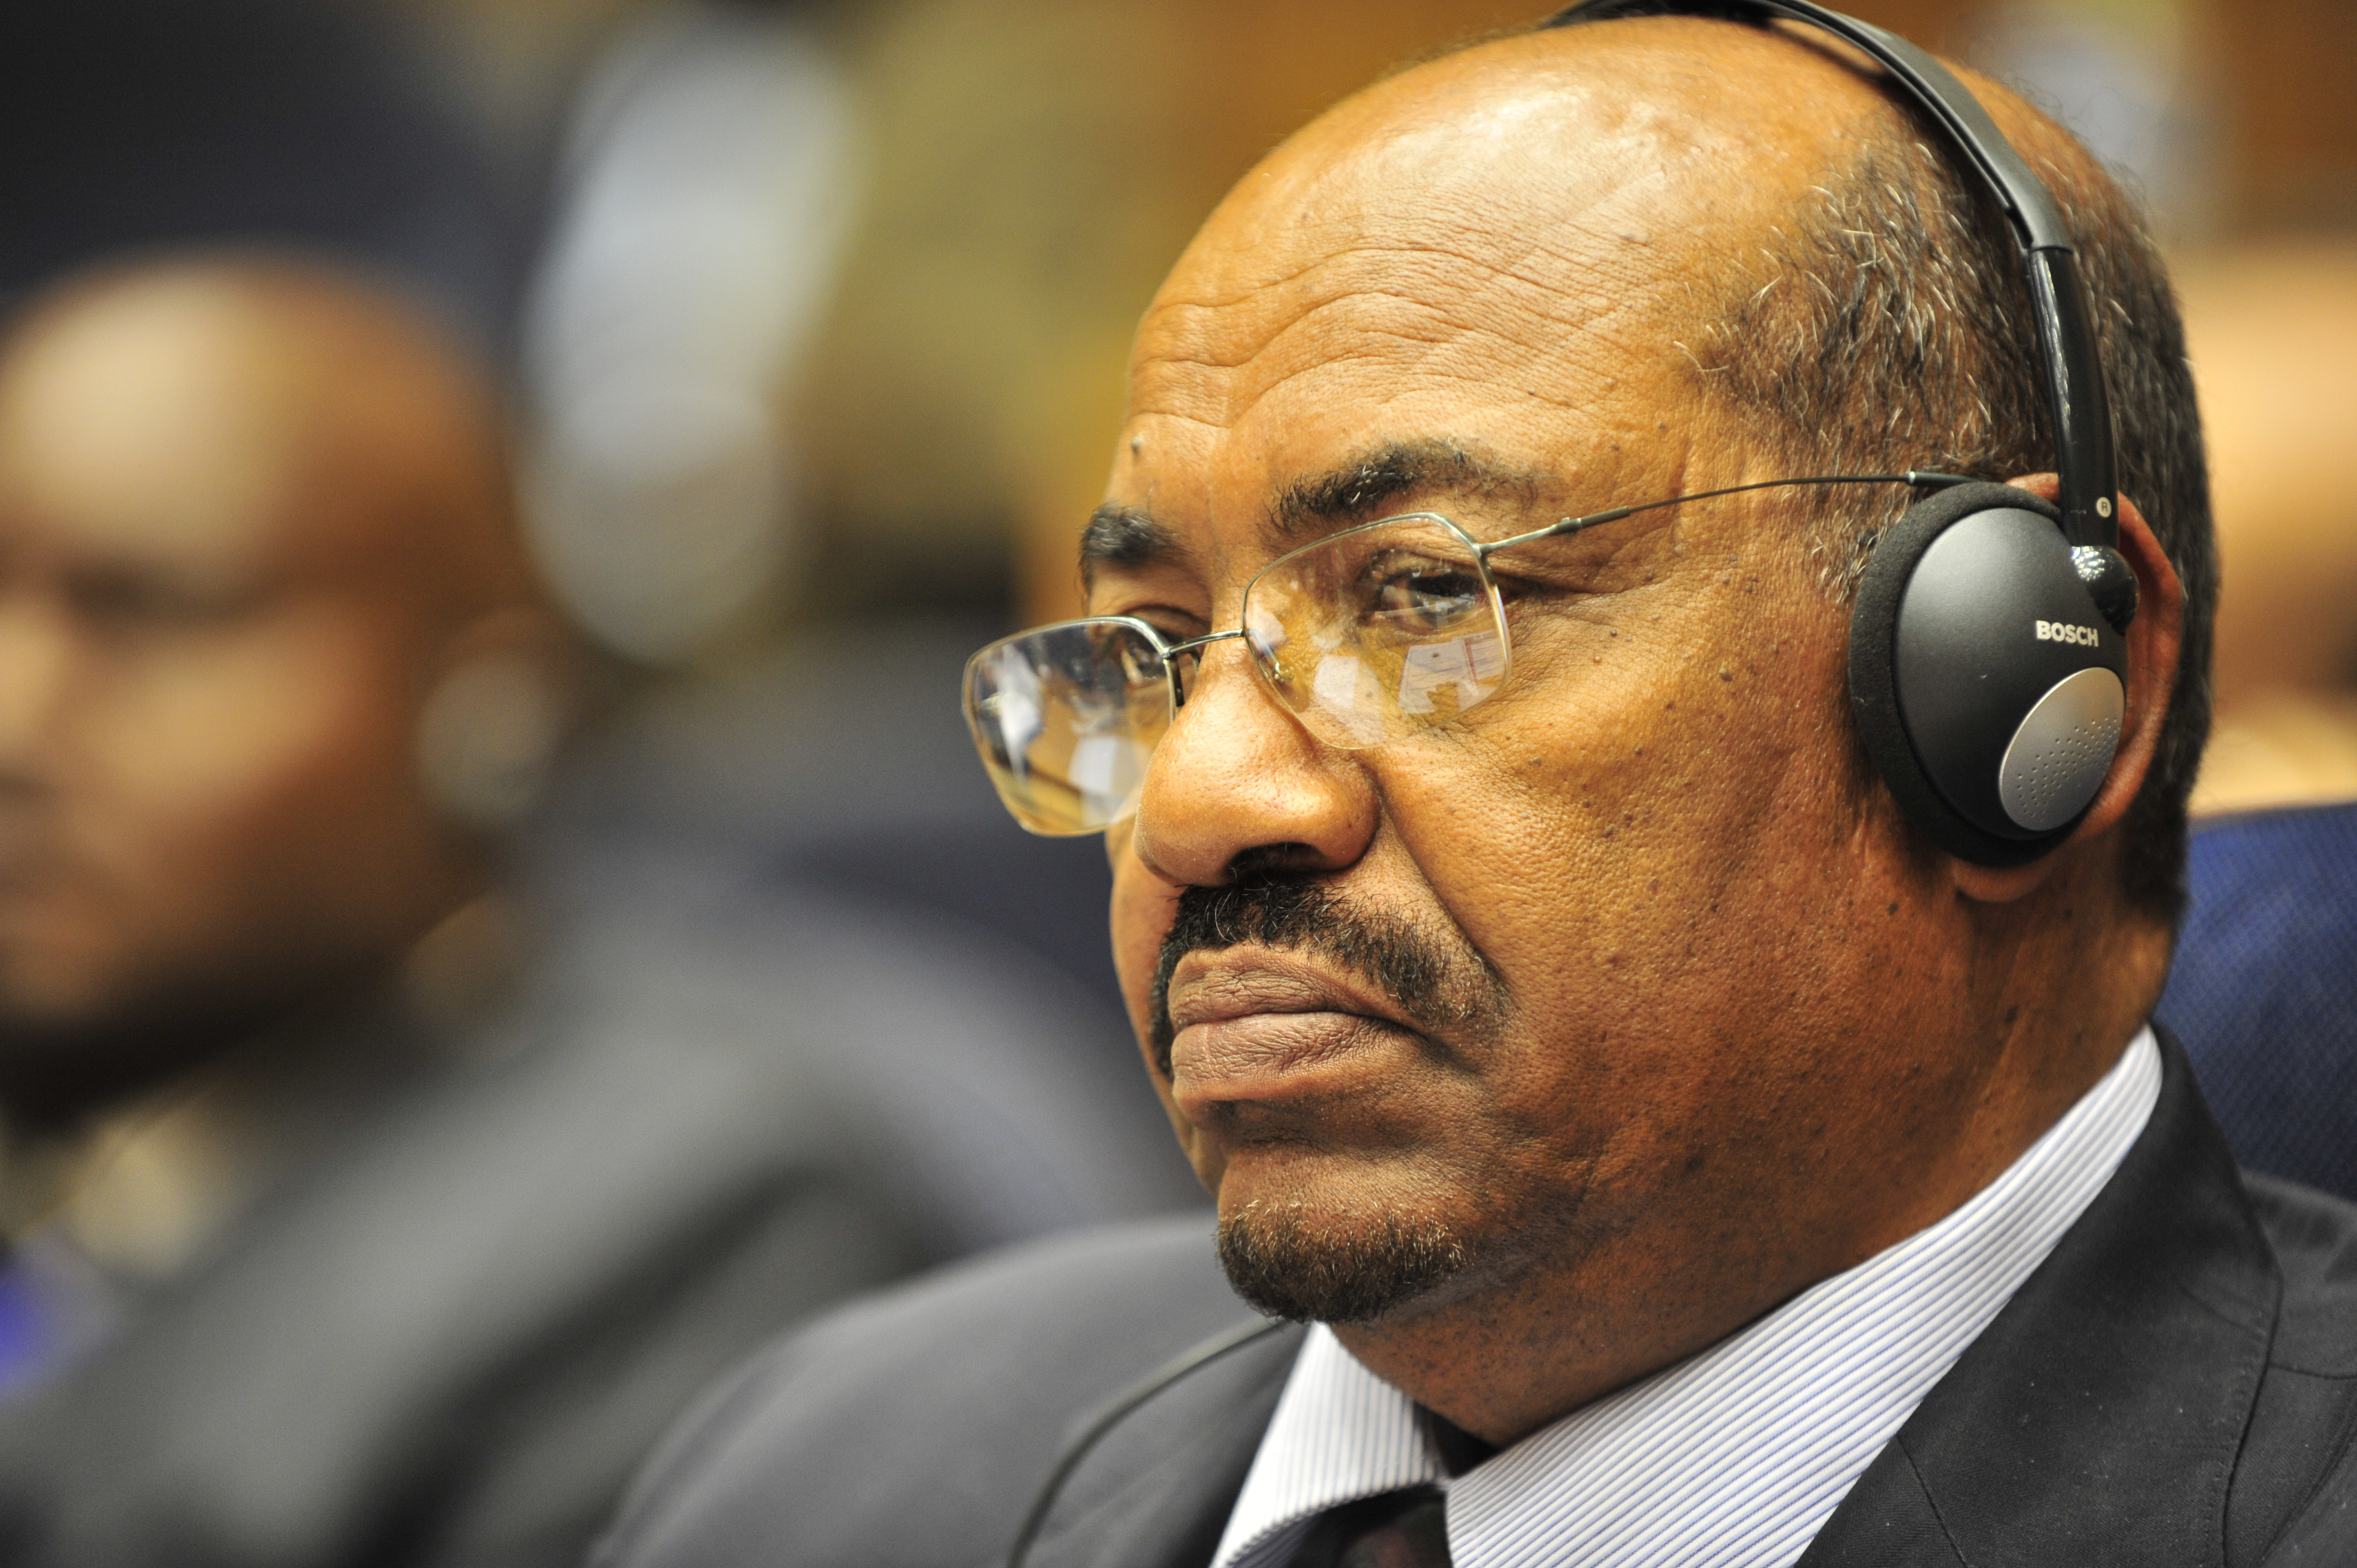 Ousted Sudan president Omar al-Bashir goes on trial for 1989 coup